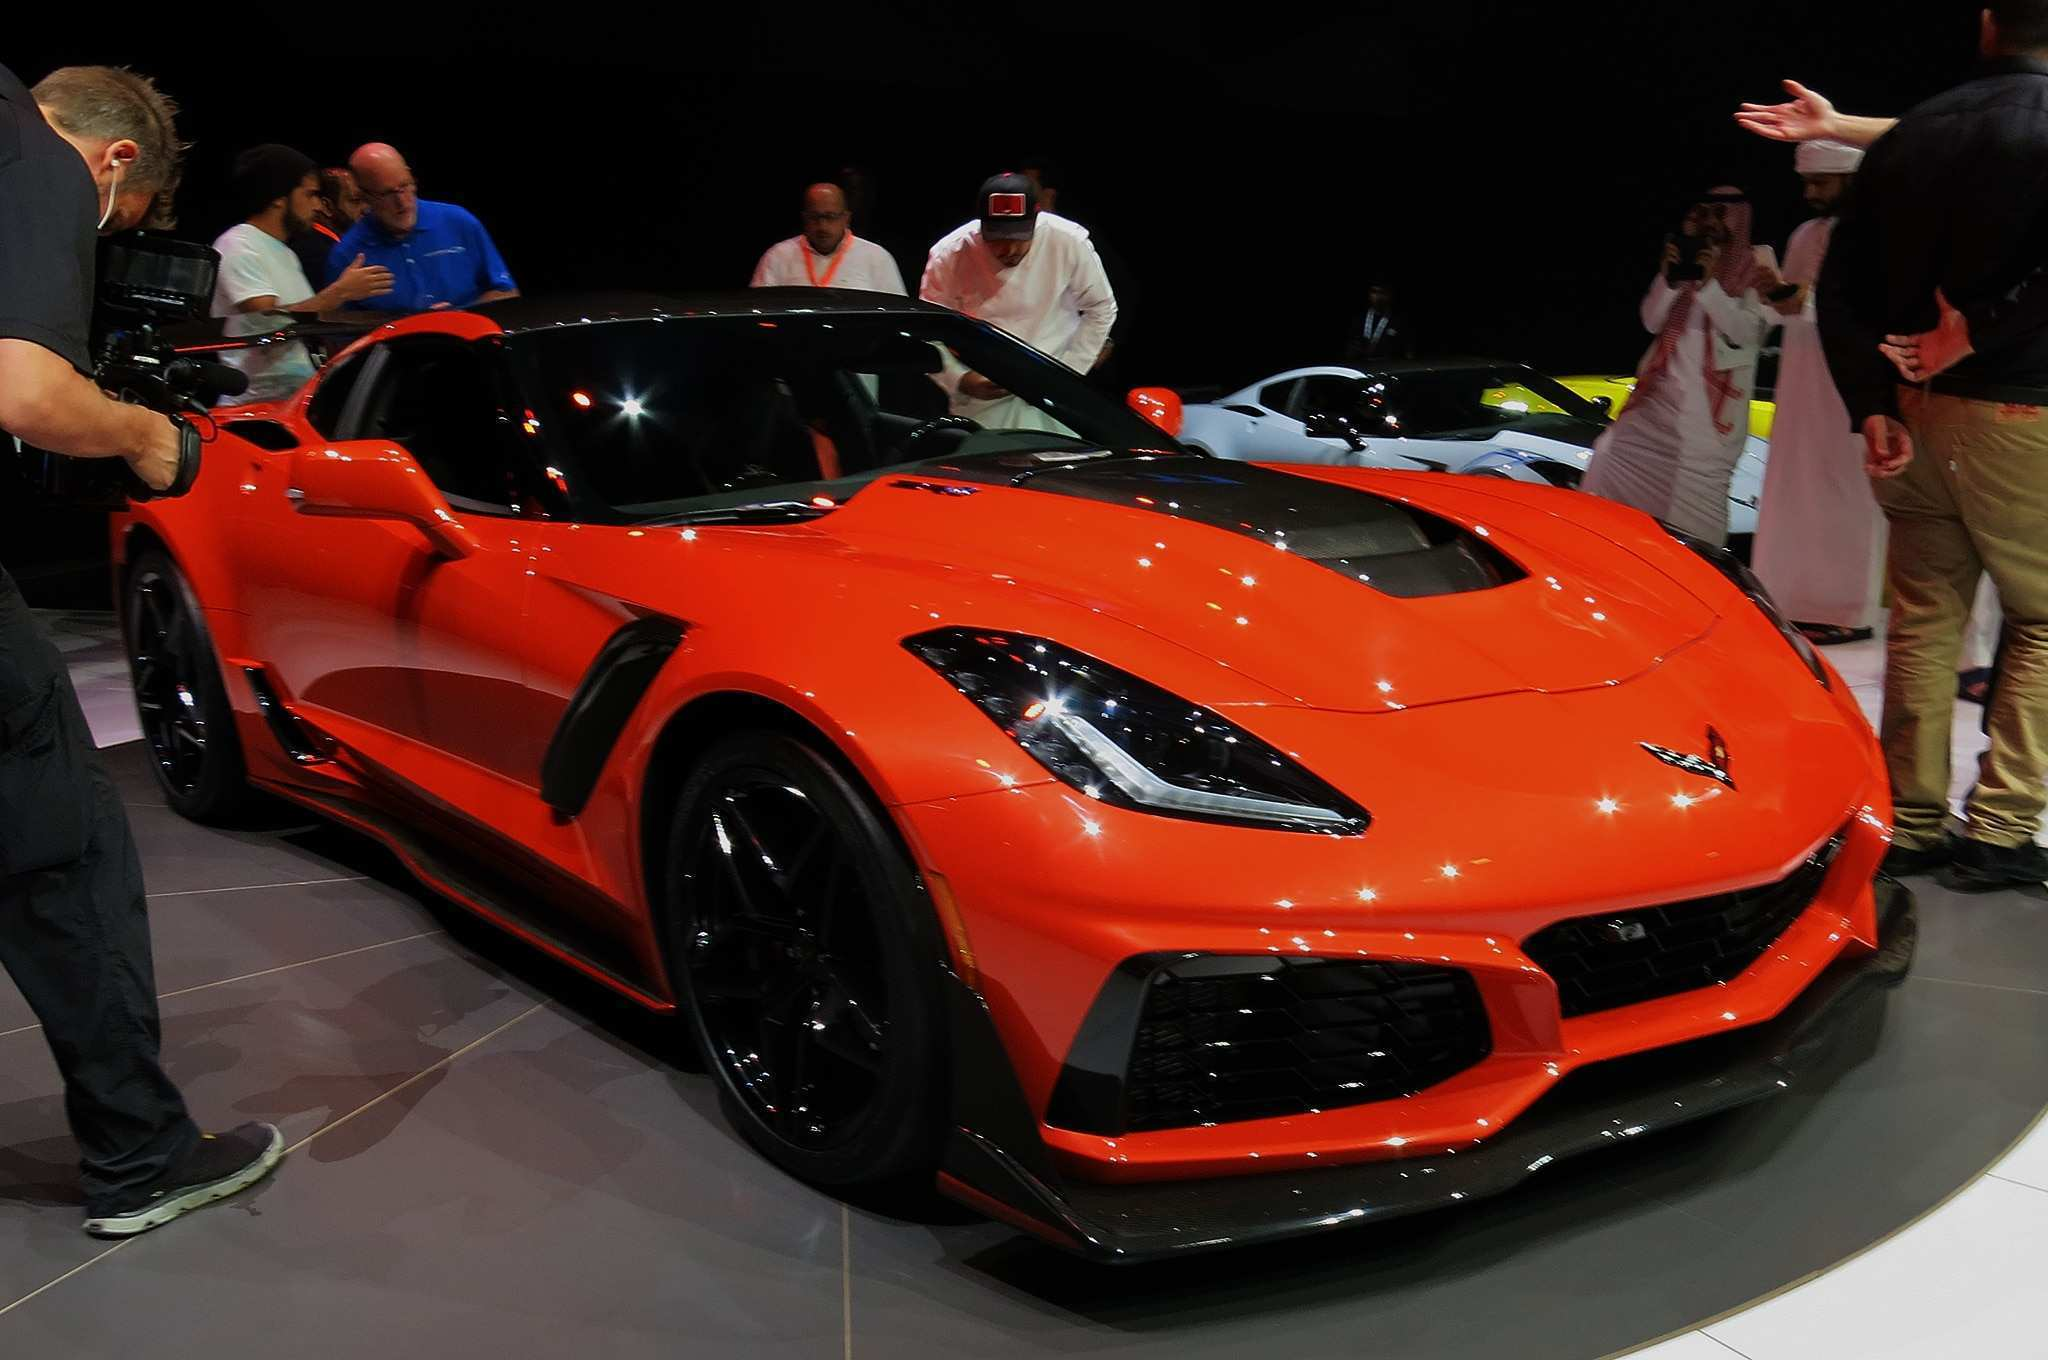 52 Concept of 2019 Chevrolet Corvette Zr1 Release with 2019 Chevrolet Corvette Zr1